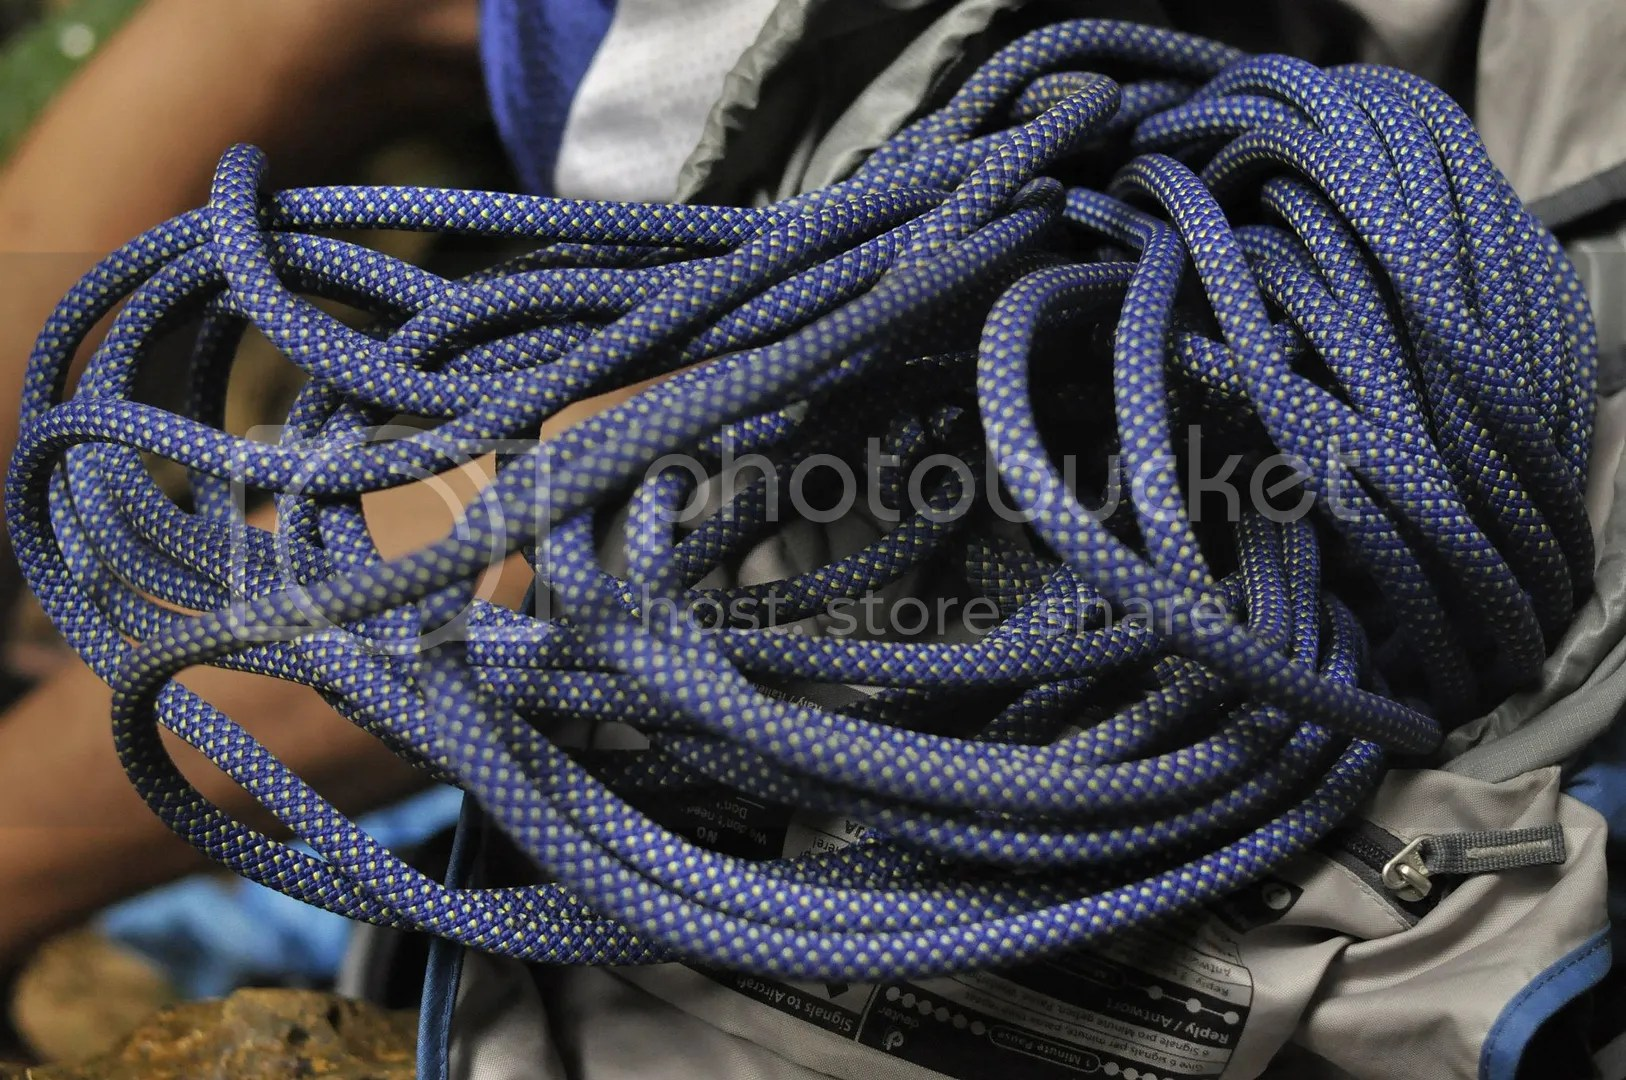 Mammut Tusk Superdry Dry Rope